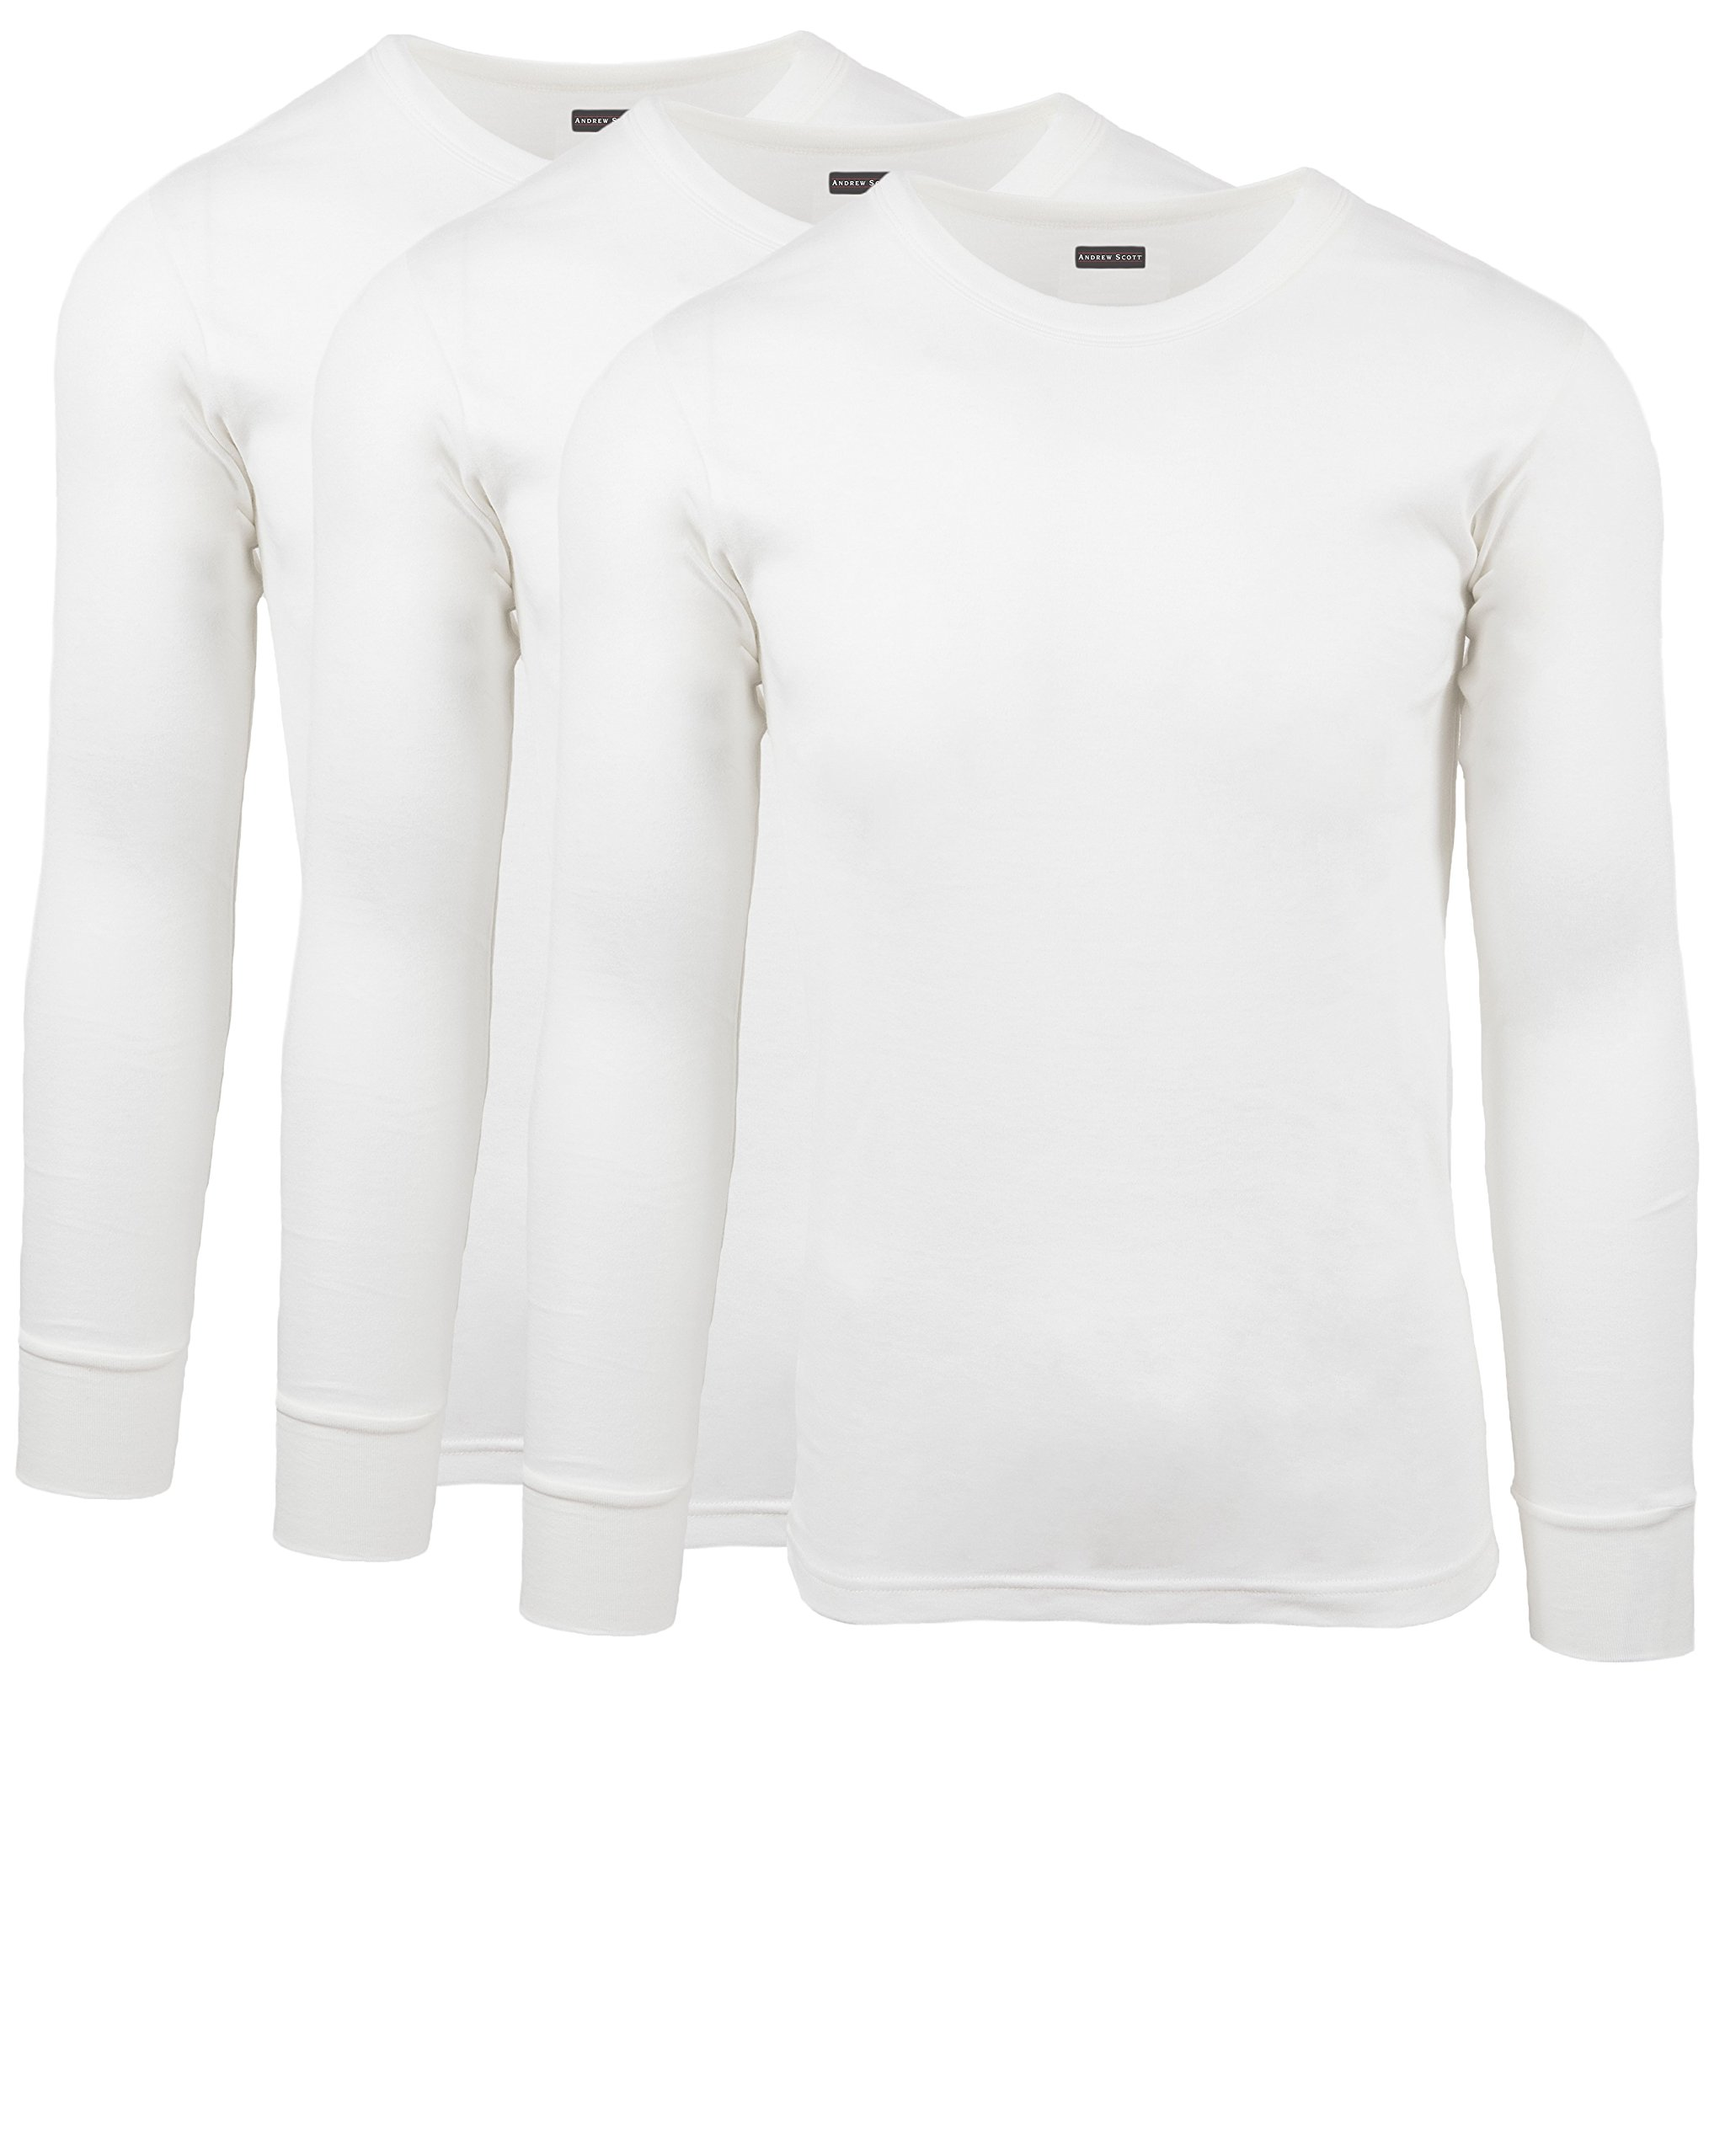 Andrew Scott Men's 3 Pack Premium Cotton Thermal Top Base Layer Long Sleeve Crew Neck Shirt (3XL, 3 Pack - Warm White) by ANDREW SCOTT